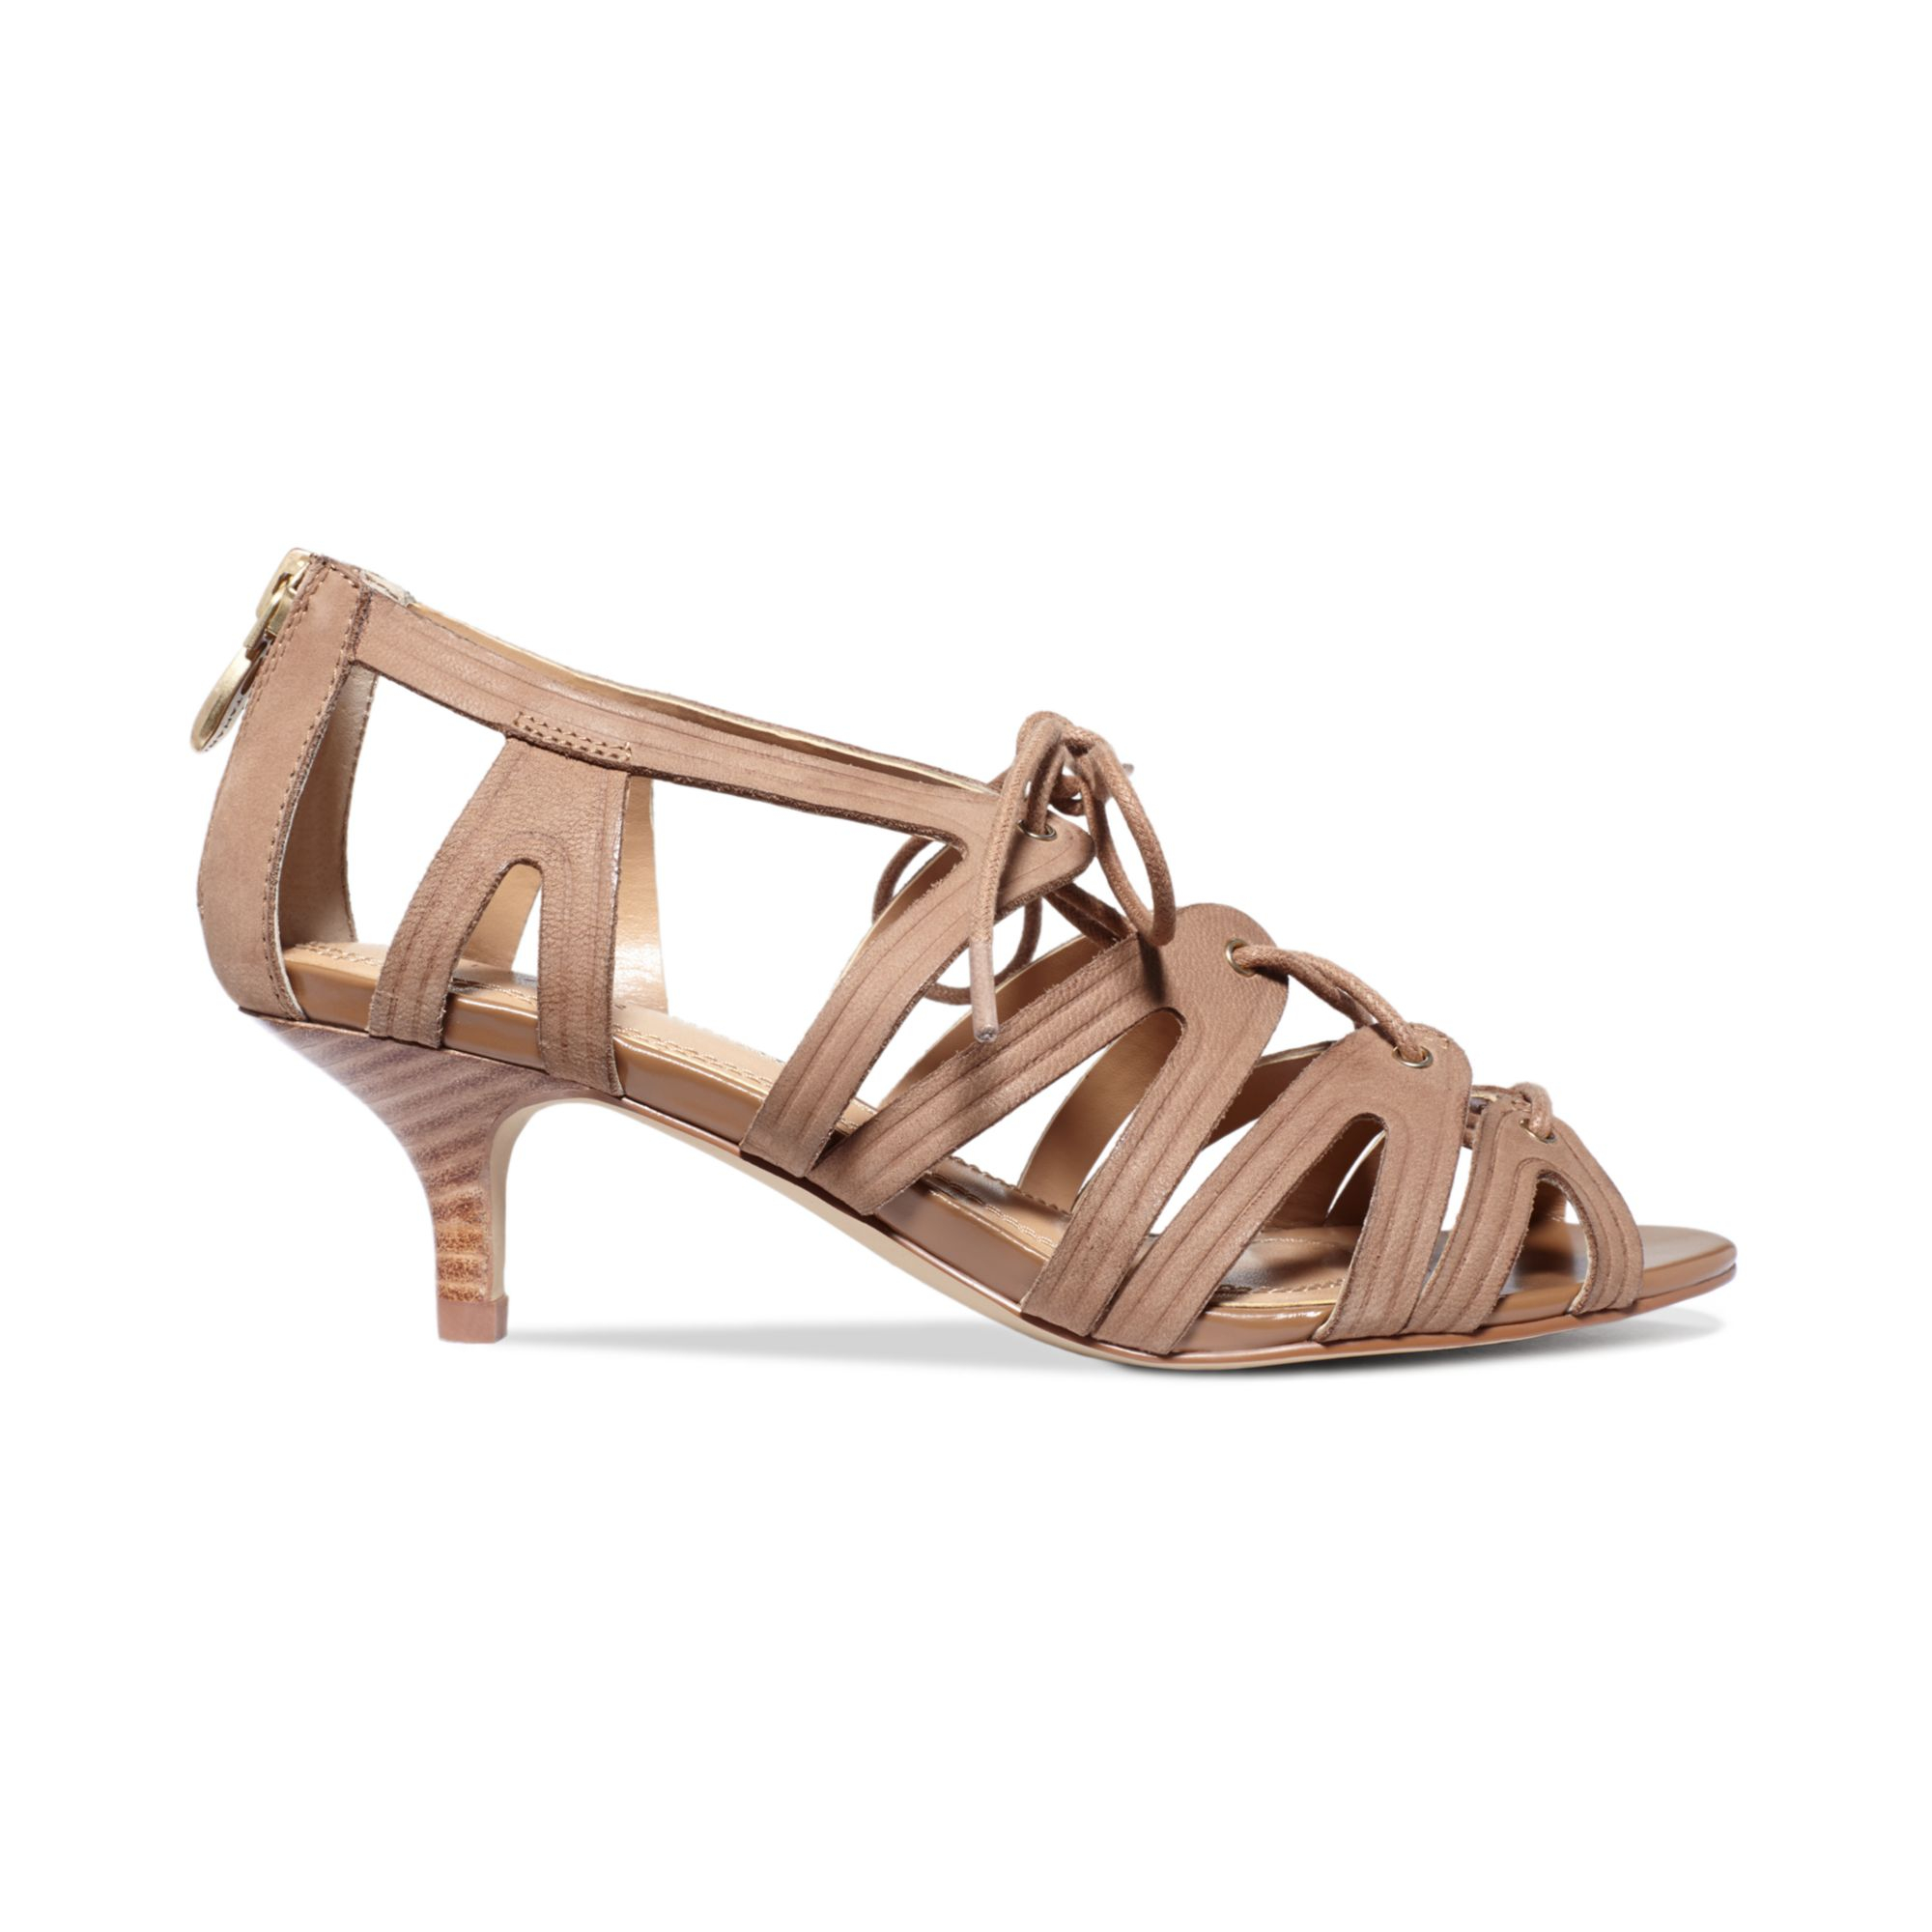 Tahari Womens Darra Kitten Heel Sandals in Natural | Lyst